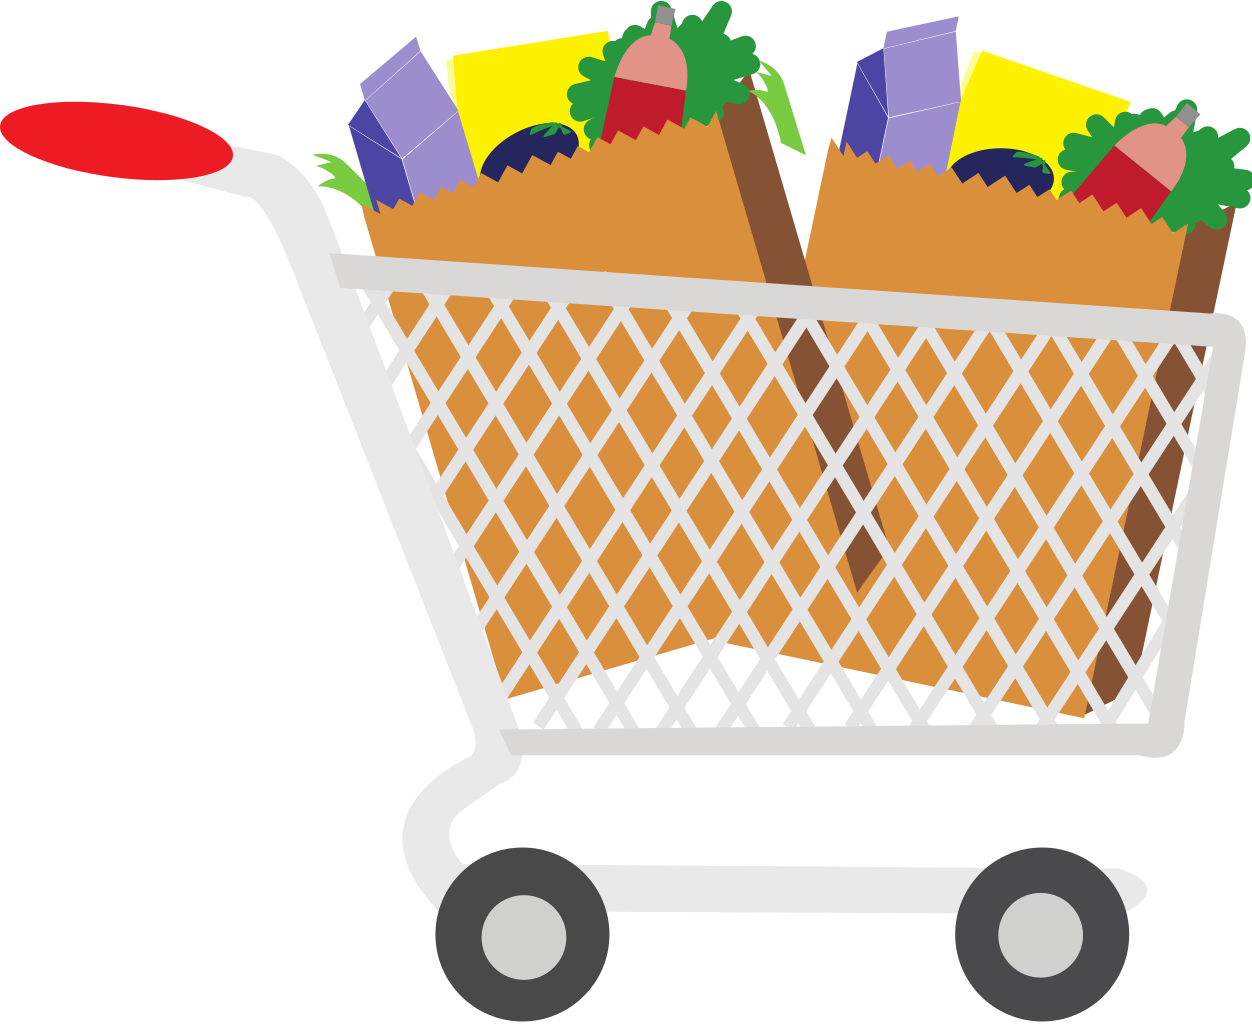 Grocery clipart mini mart. Groceries clip art free